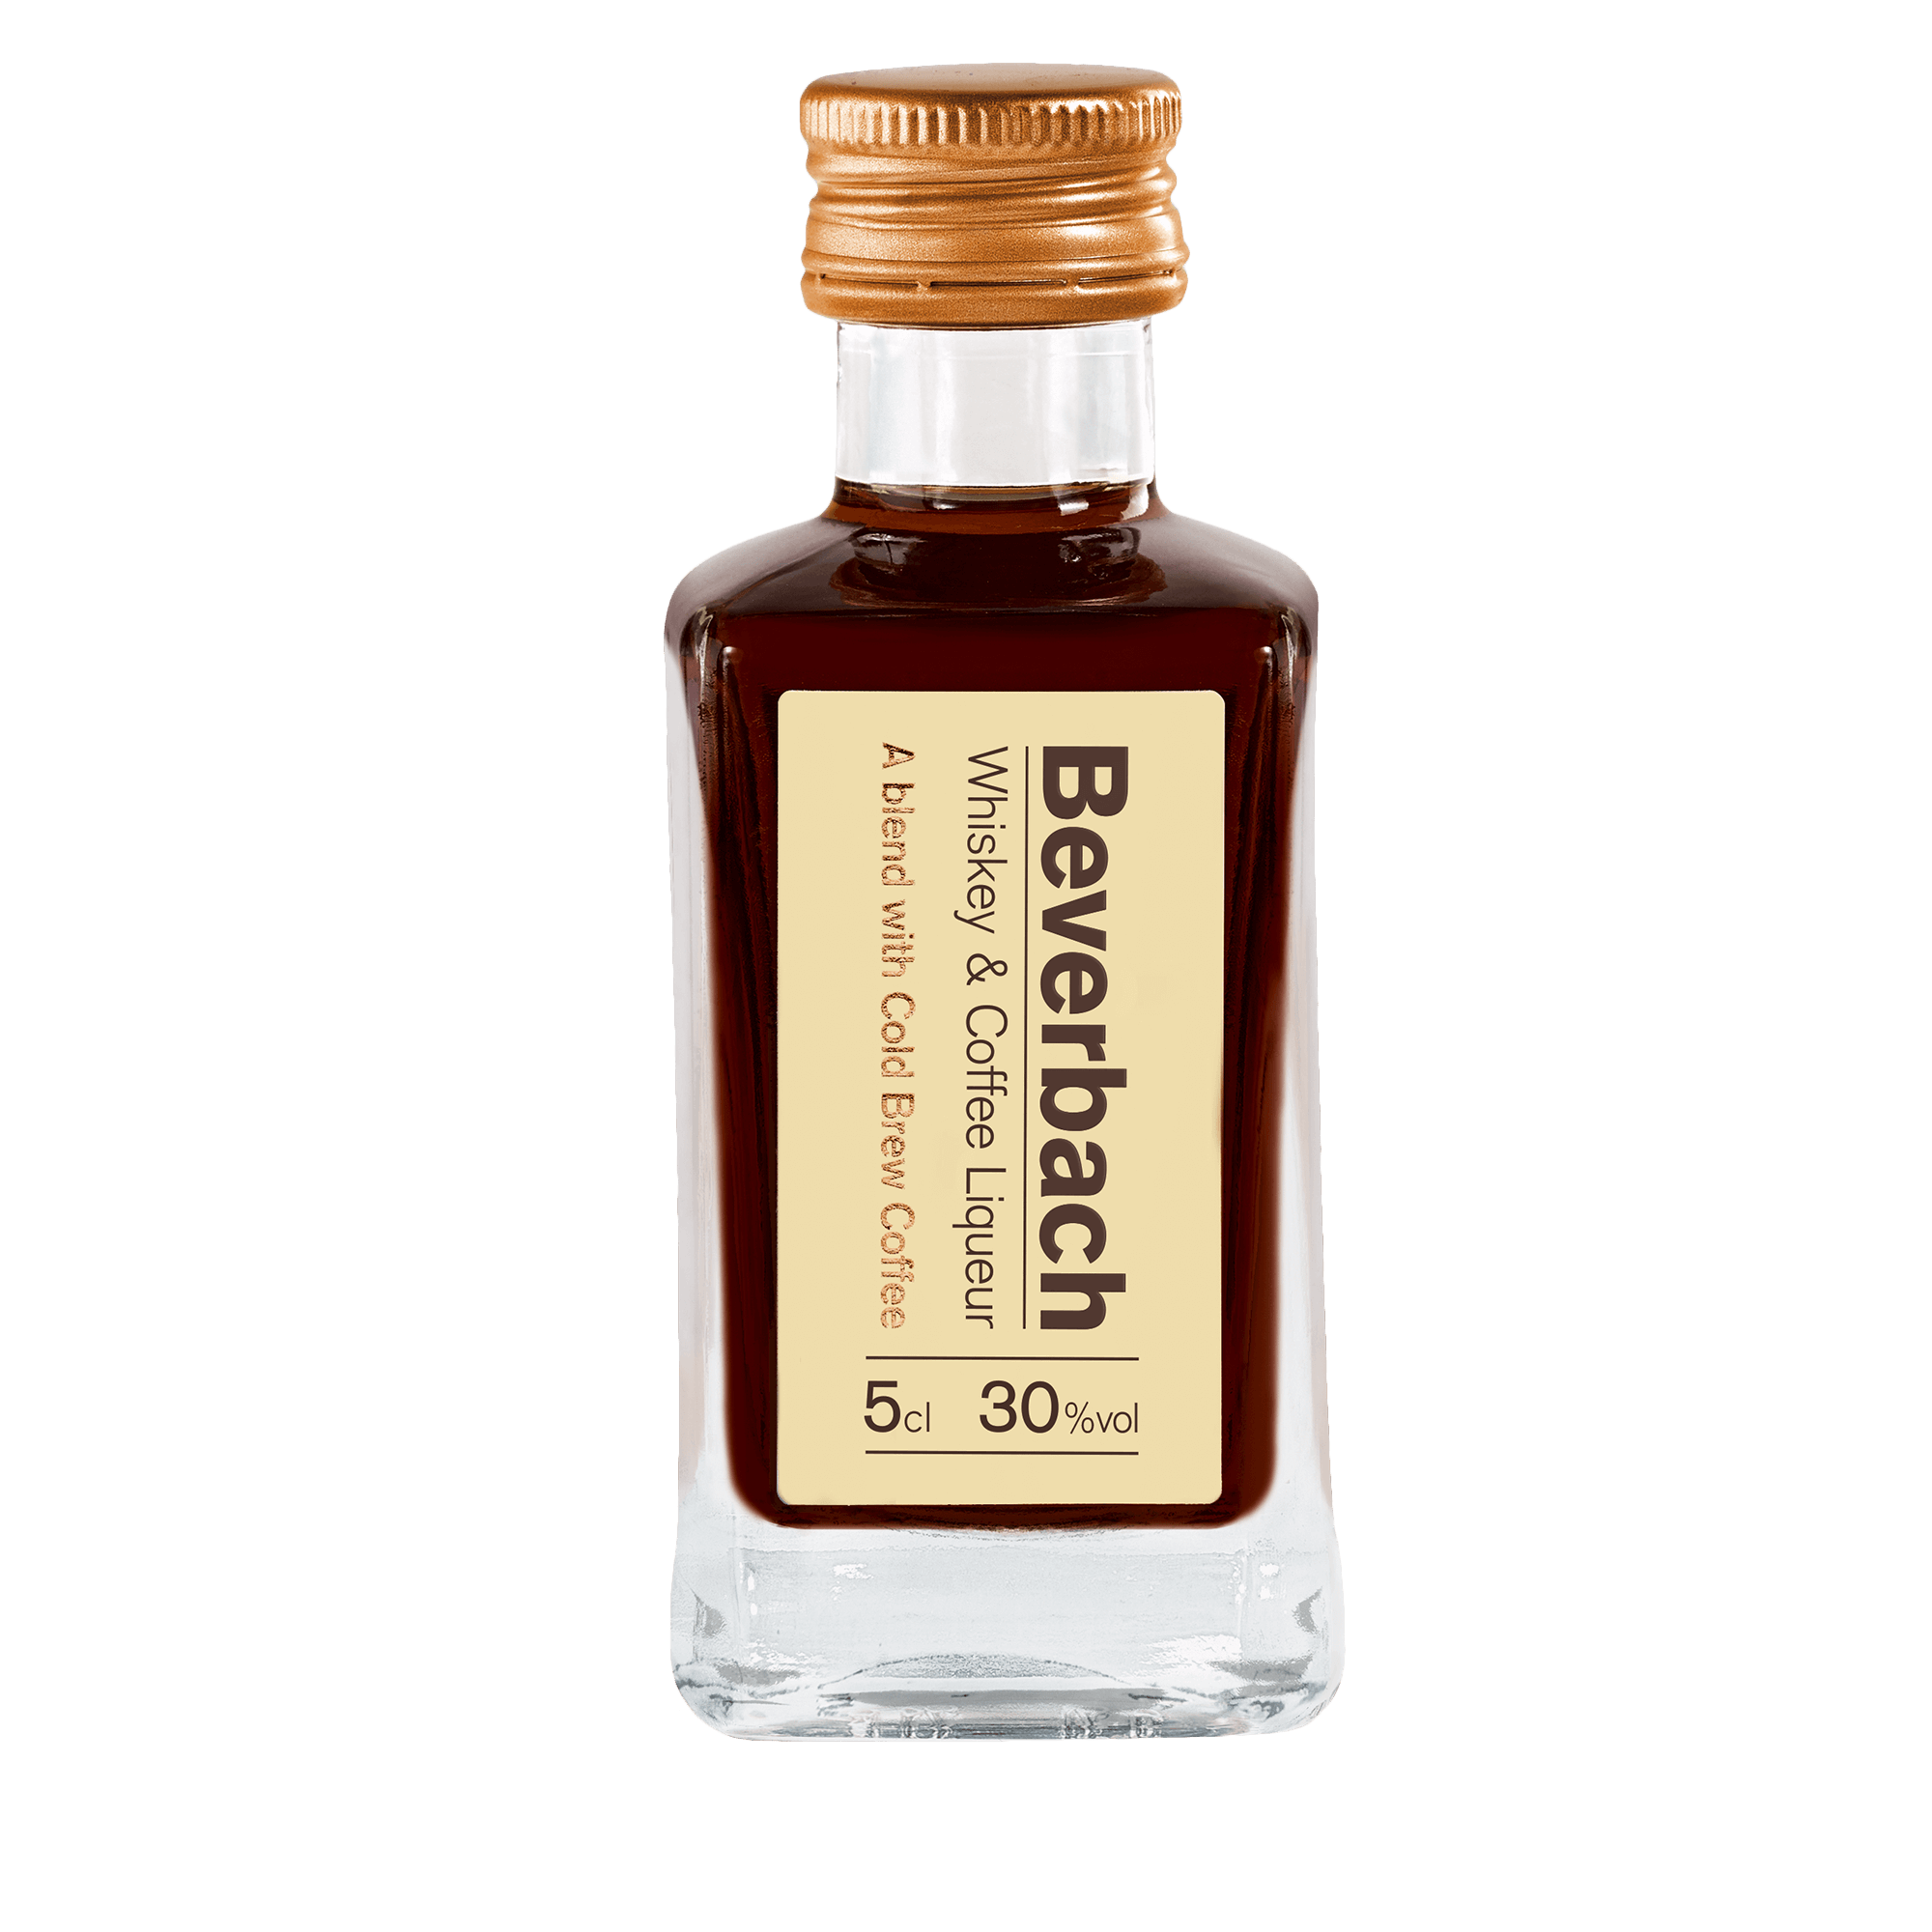 Beverbach Whiskey & Coffee Liqueur Miniaturflasche